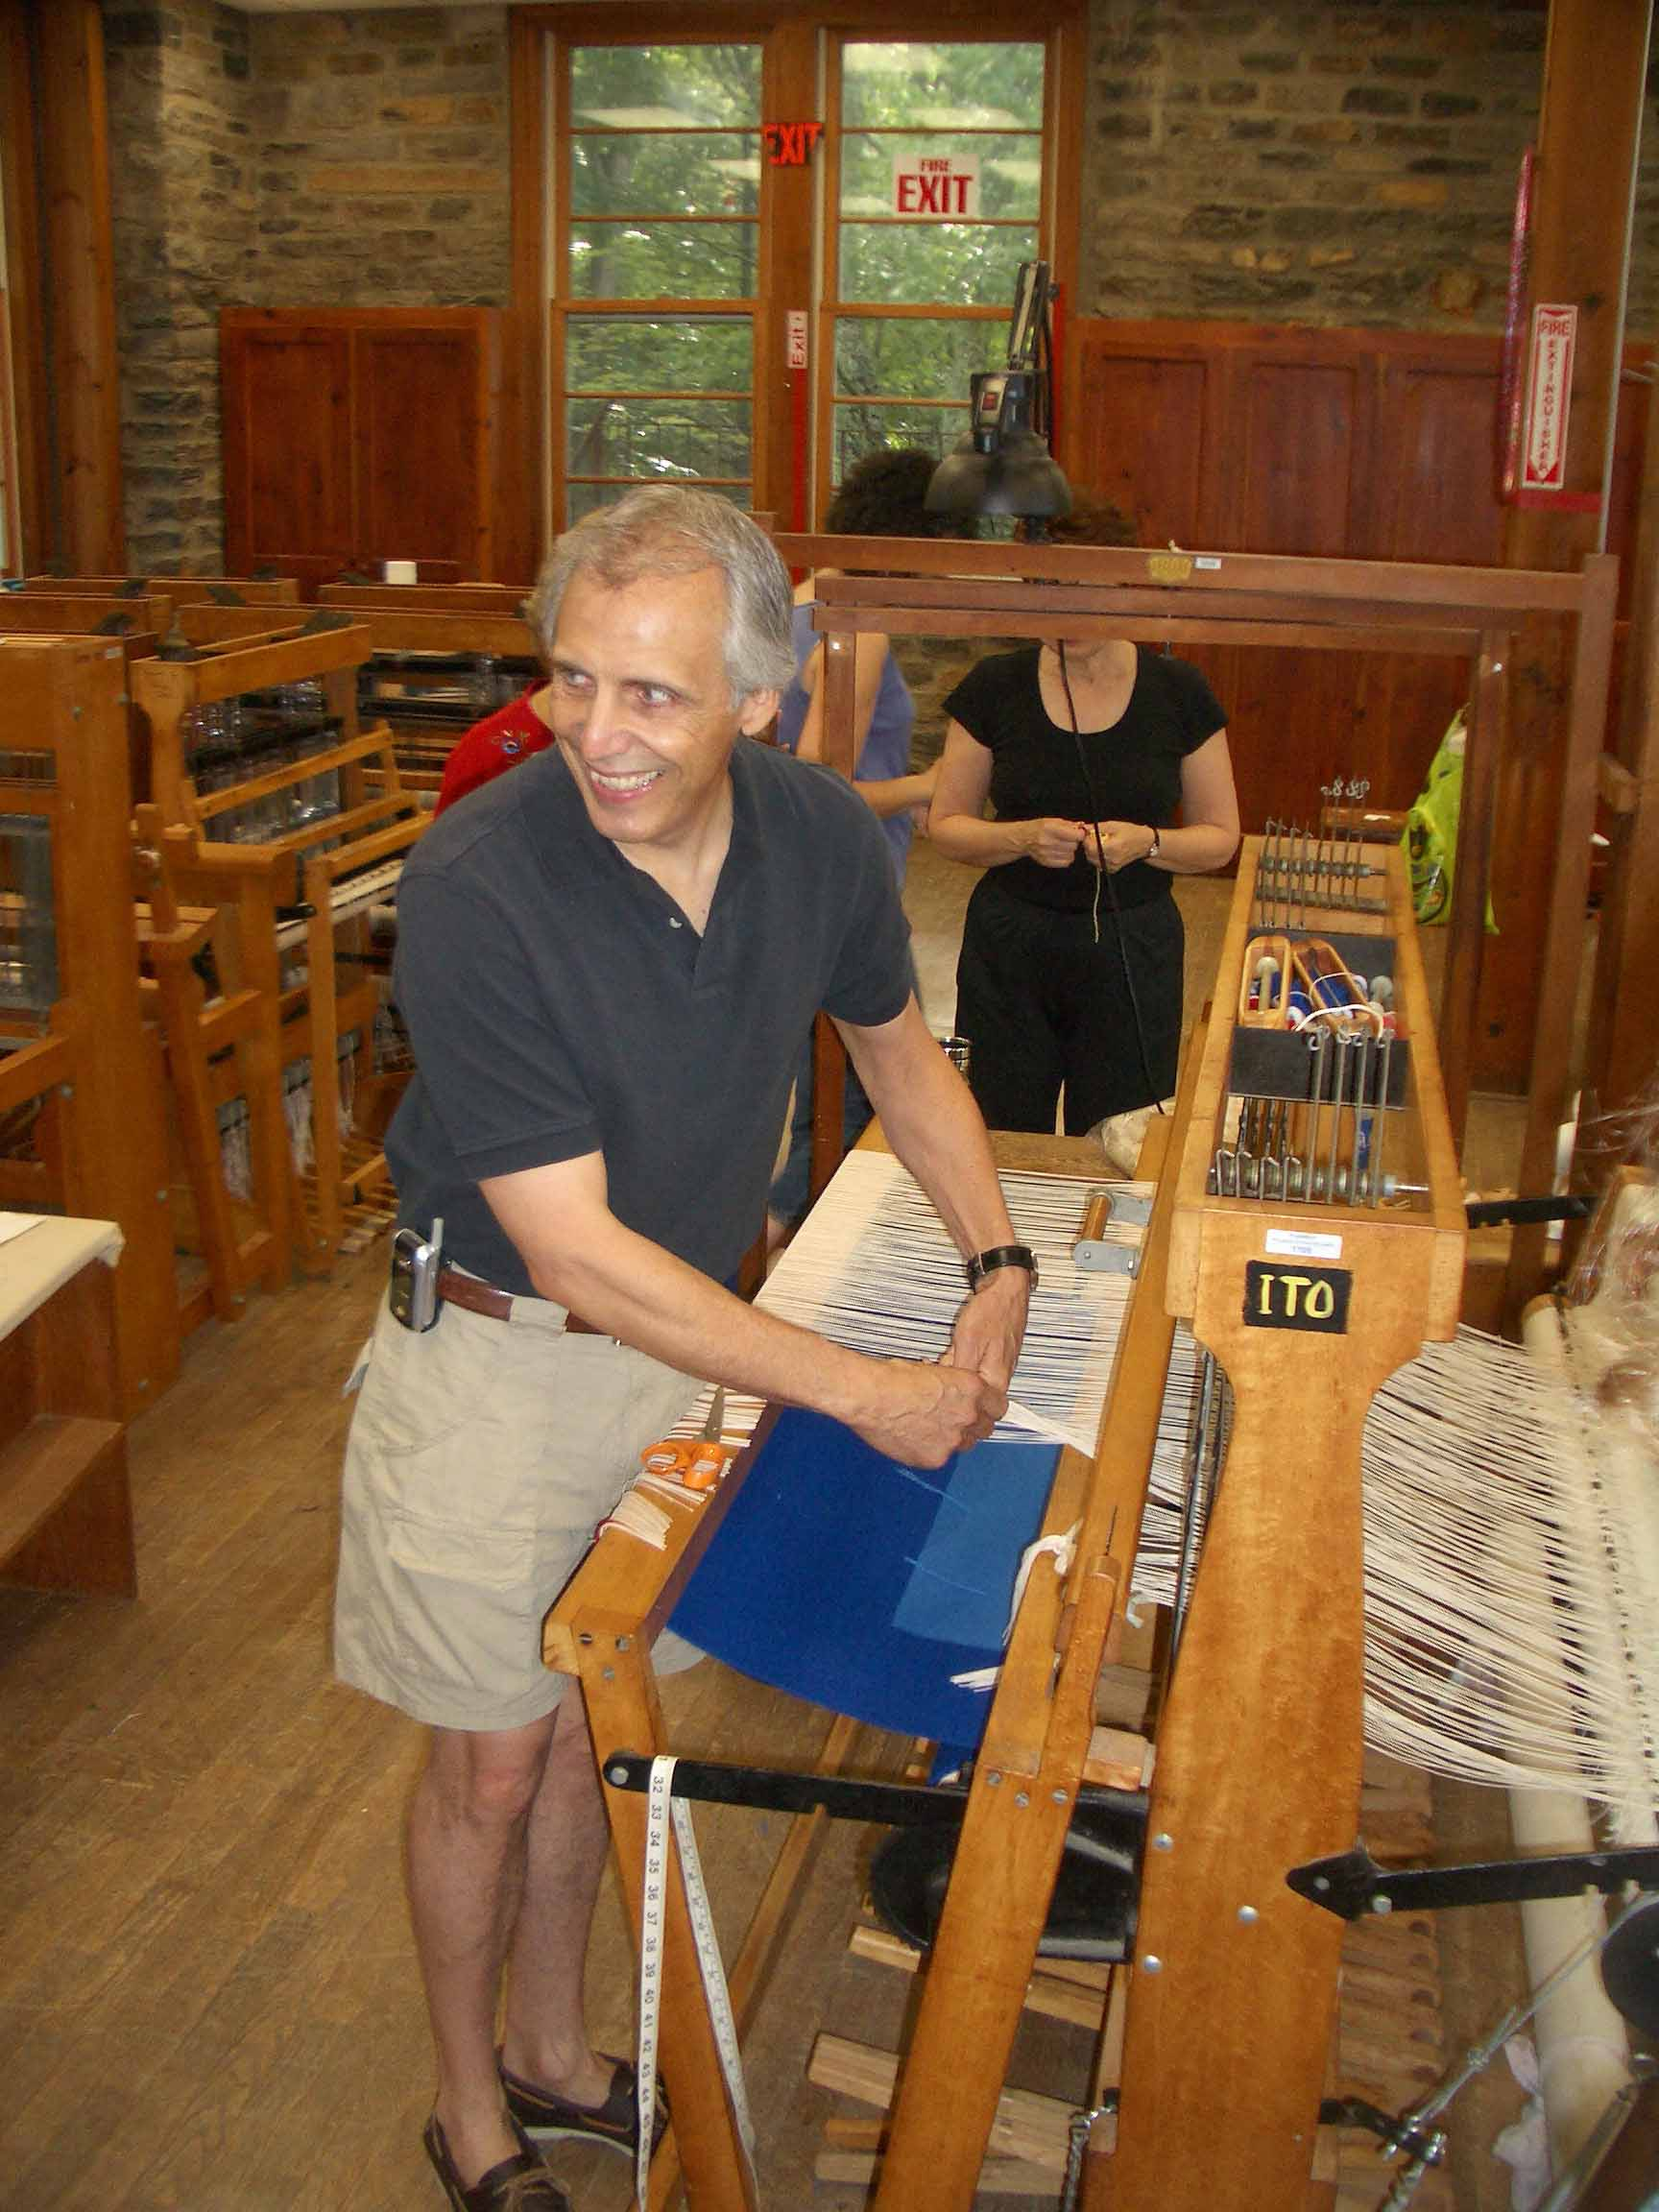 James Koehler, Penland School of Craft, 2005, cutting a Harmonic Oscillations tapestry off one of the school's Macomber looms